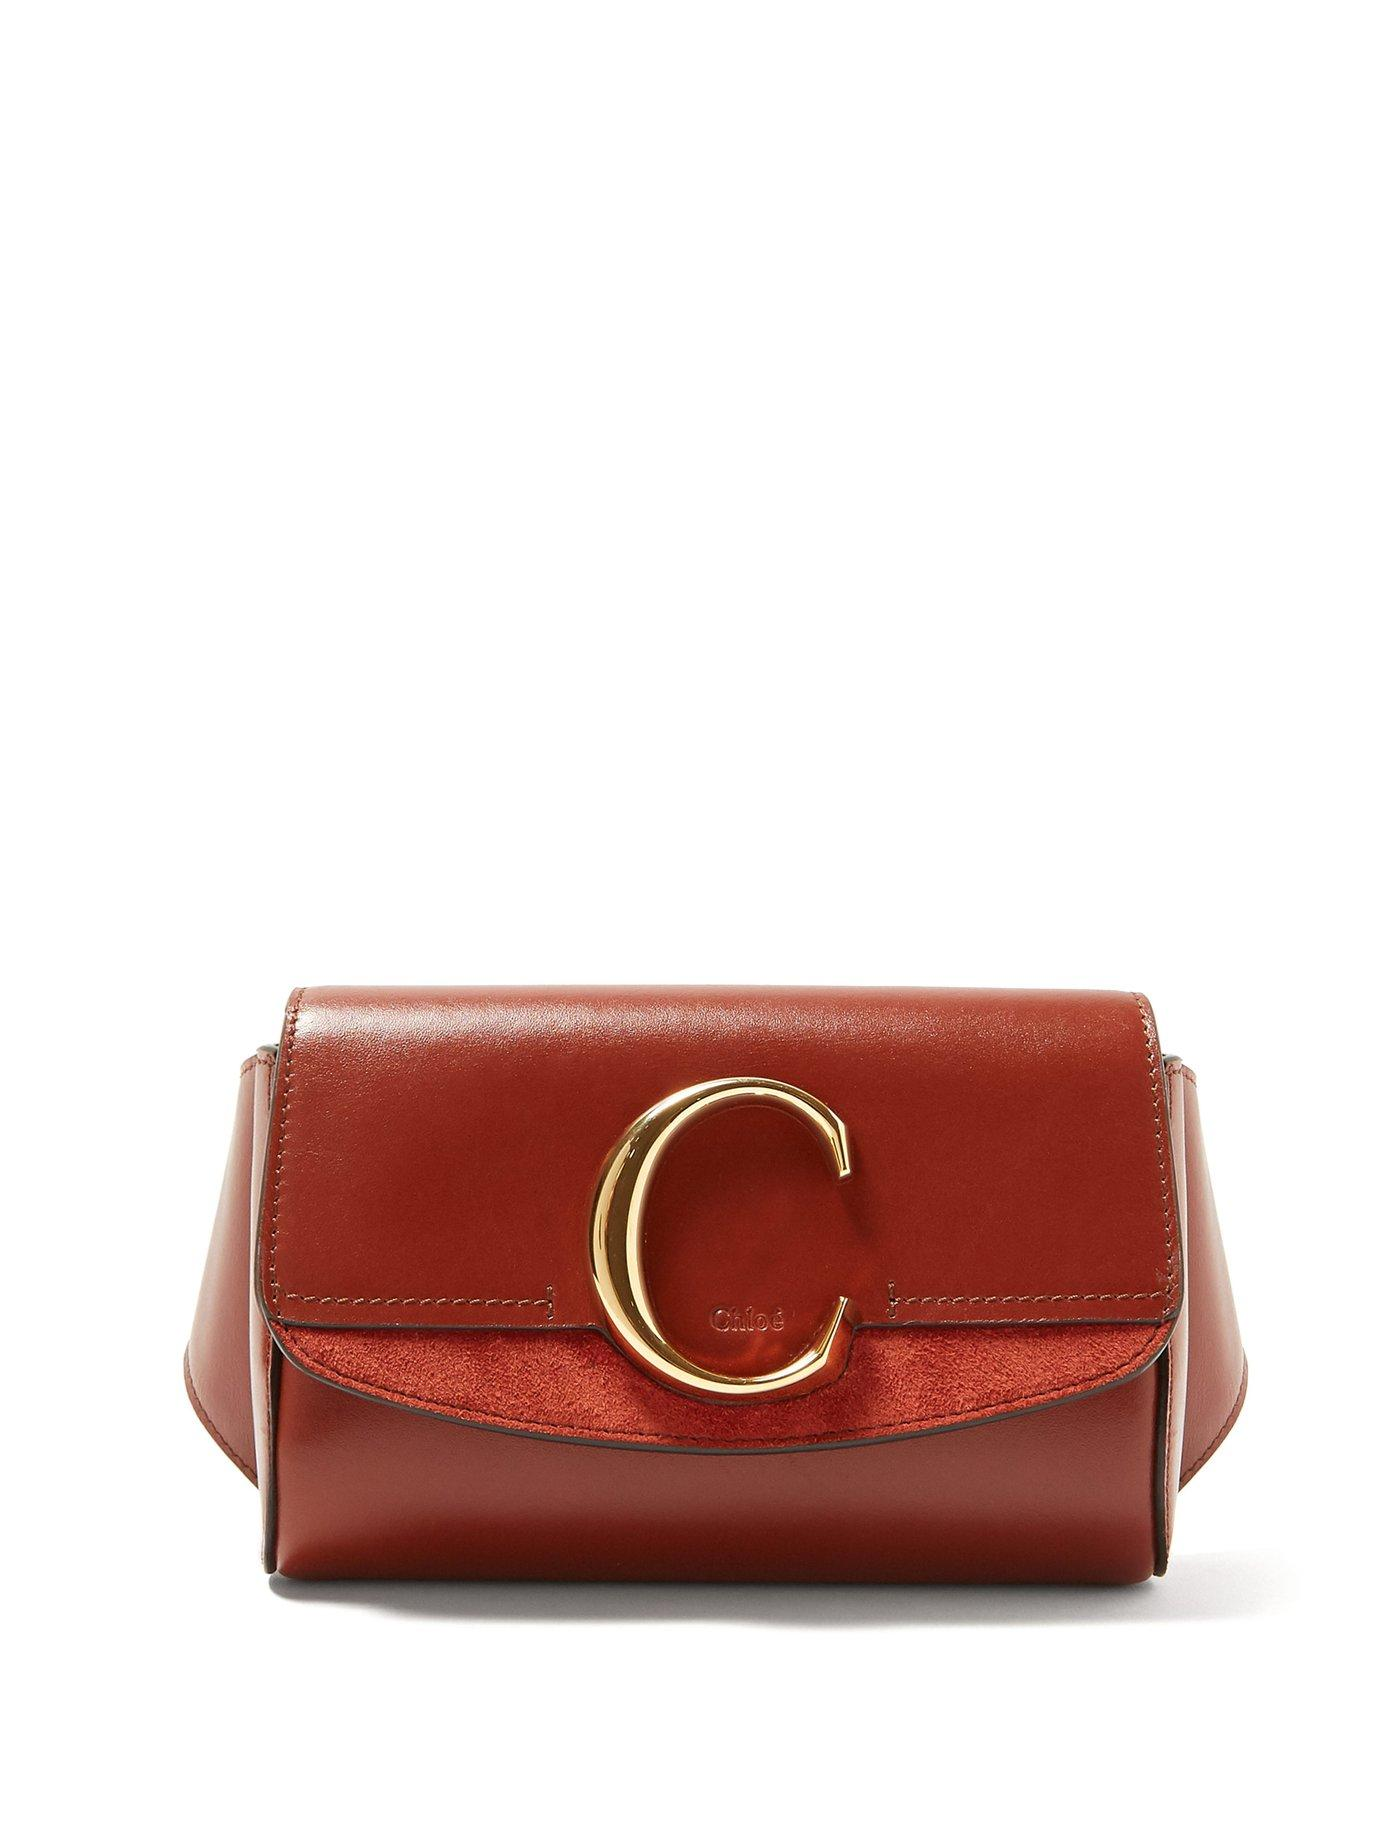 7451de2df8 Lyst - Chloé The C Leather And Suede Belt Bag in Brown